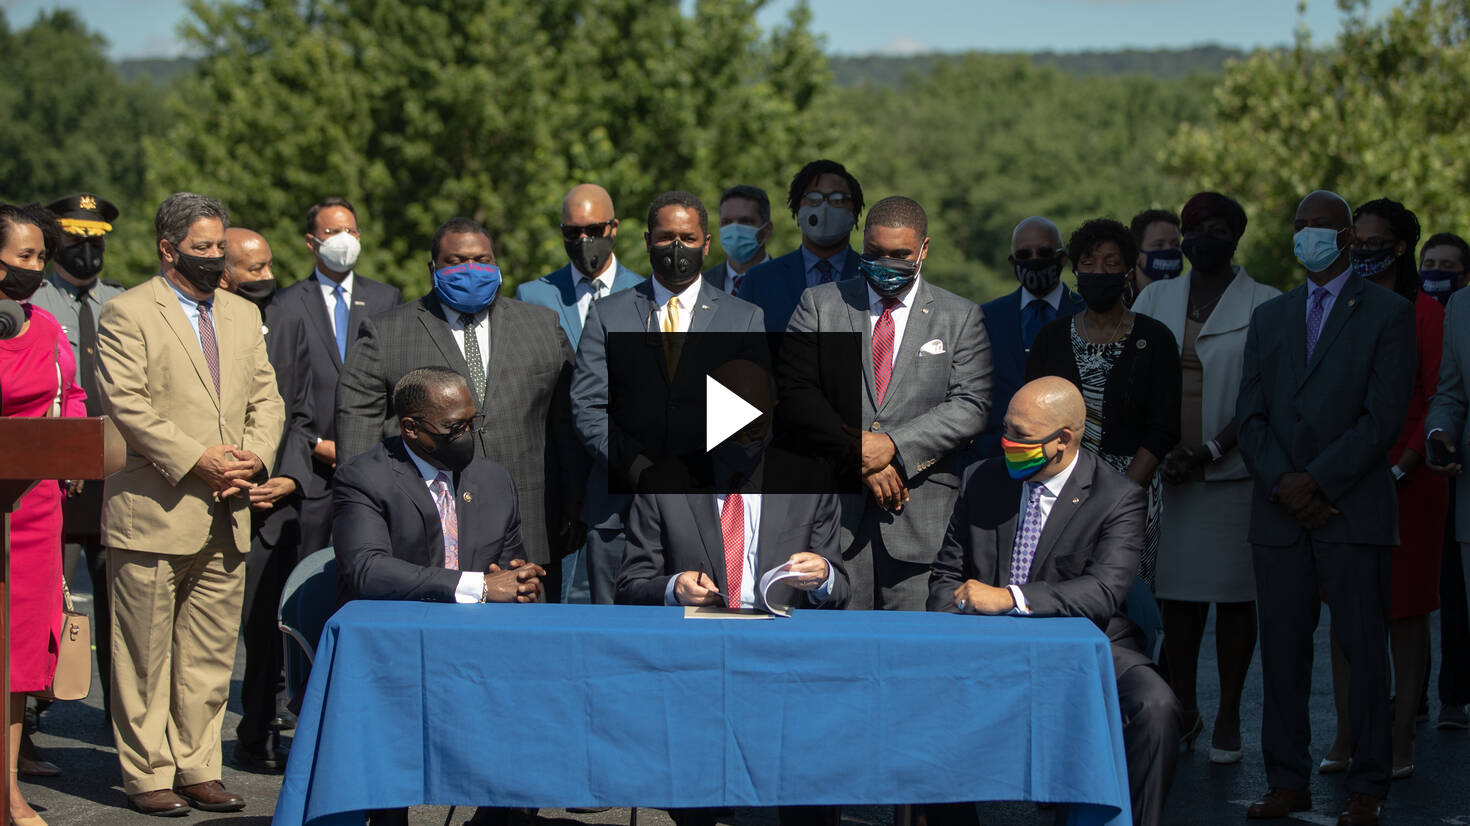 Gov. Wolf Signs Police Reform Bills :: July 14, 2020